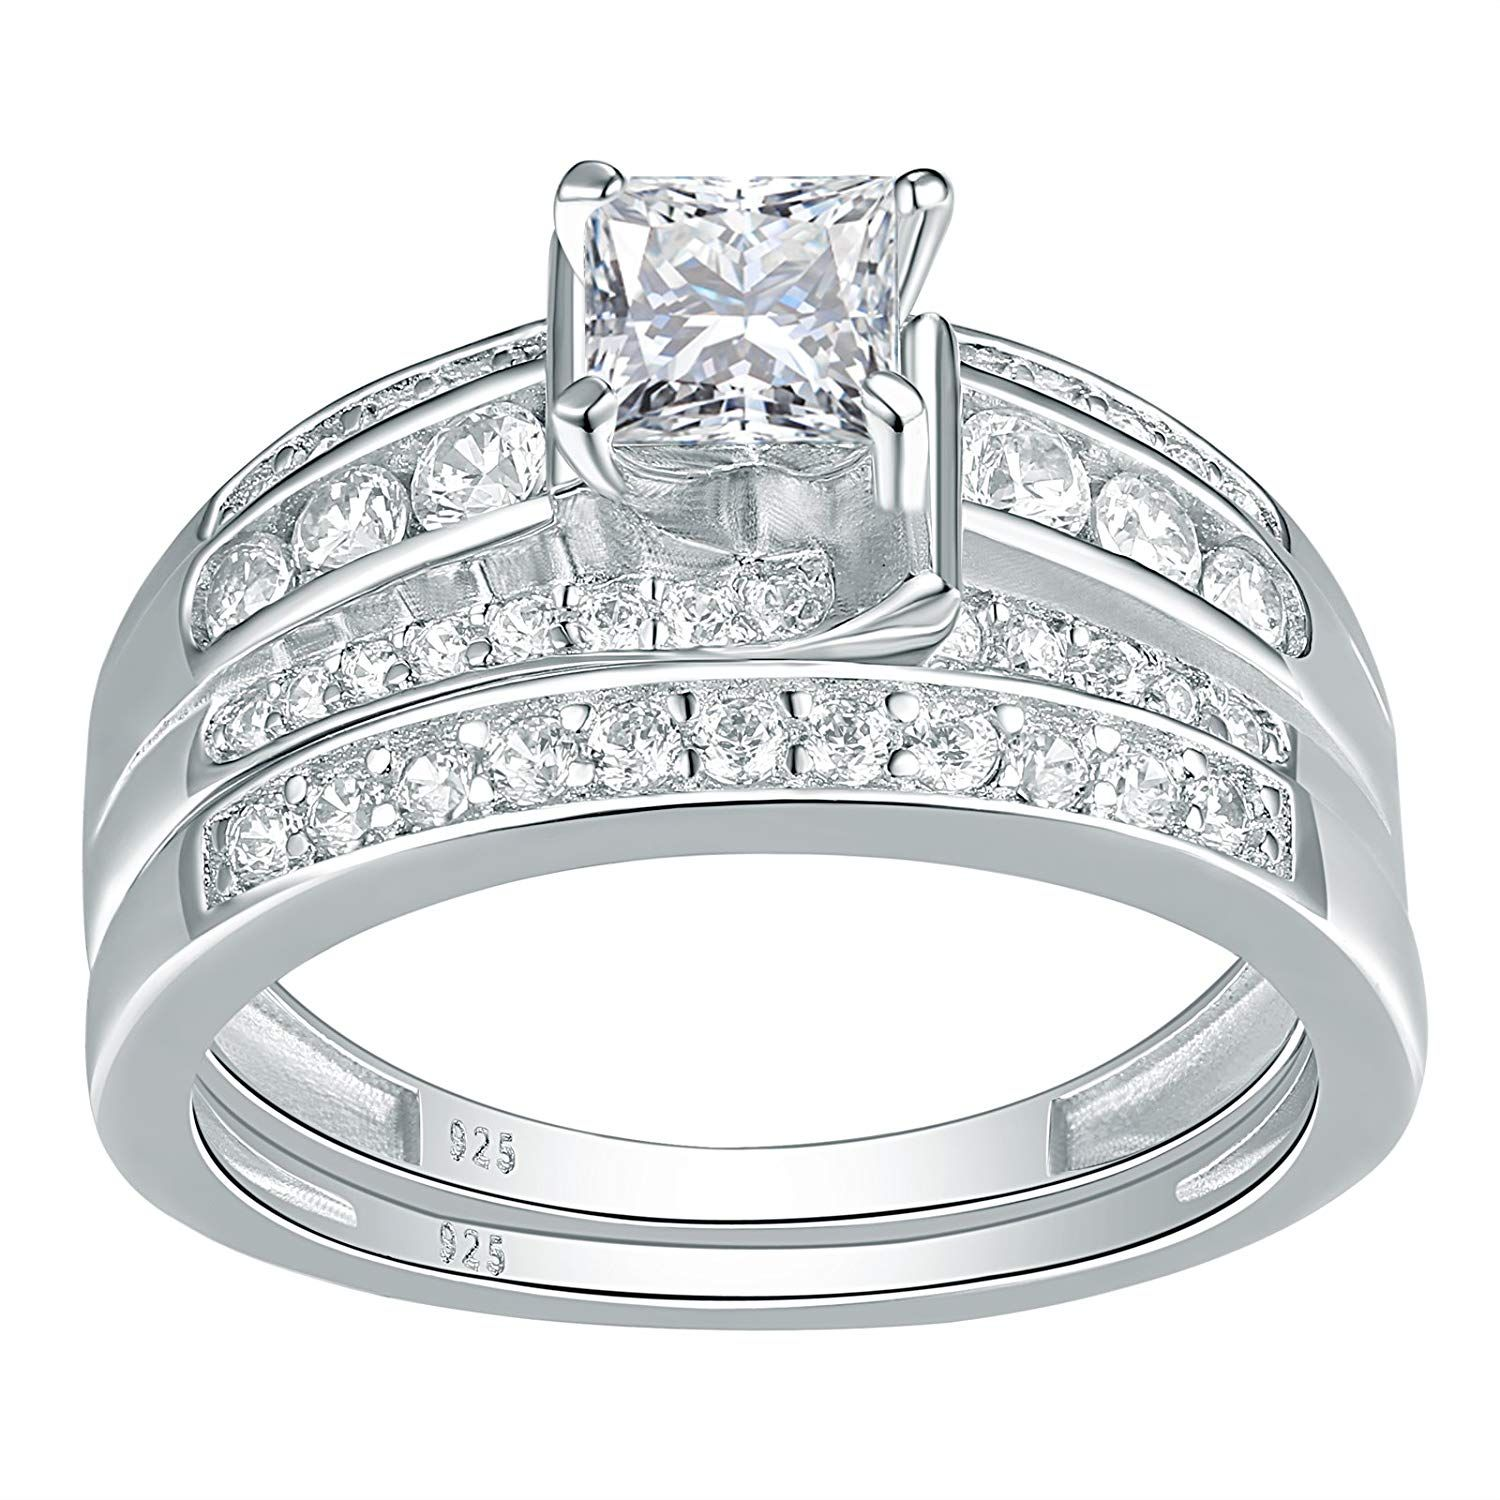 Newshe Jewellery Sterling Silver Cz Wedding Ring Sets